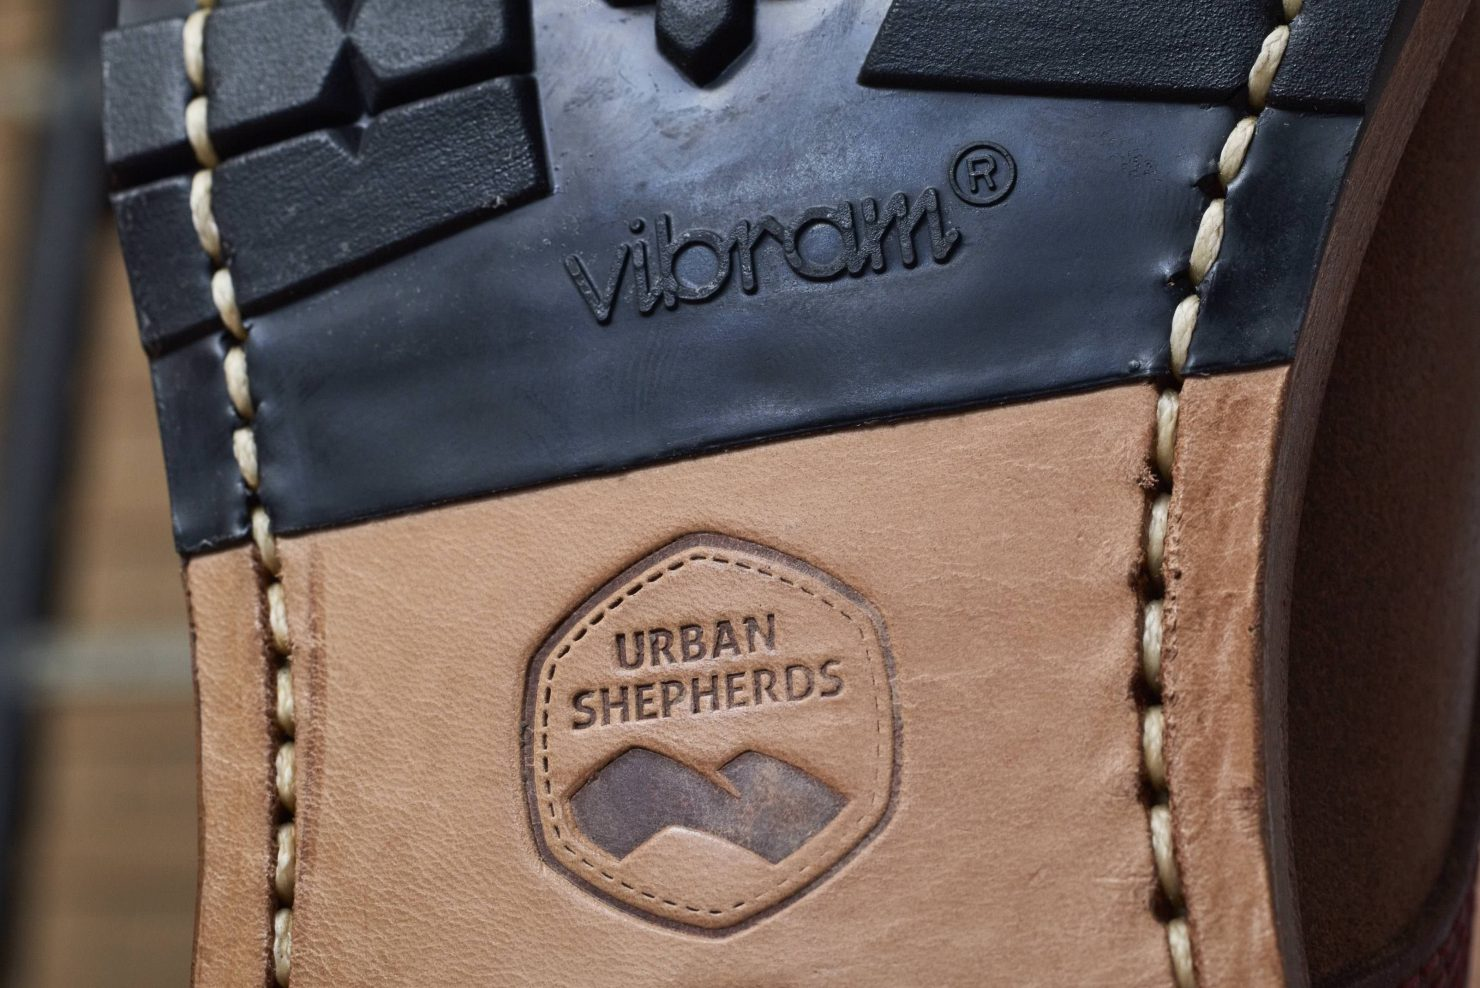 Urban Shepards Country Boots 5 1480x988 - Urban Shepards Country Boots